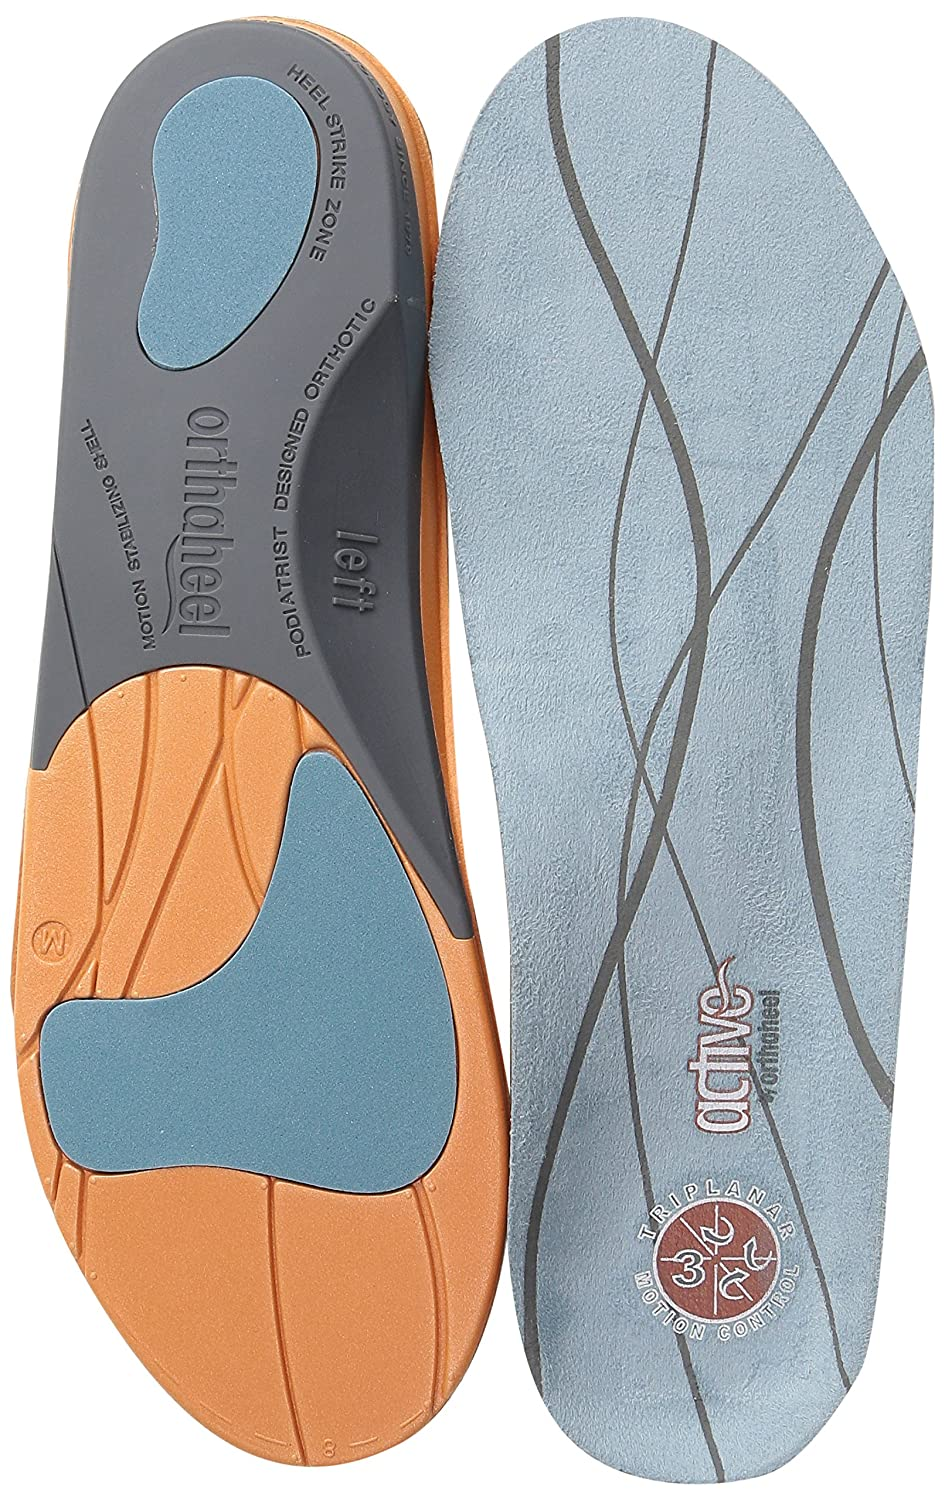 Orthaheel active men's / women's full-length orthotics